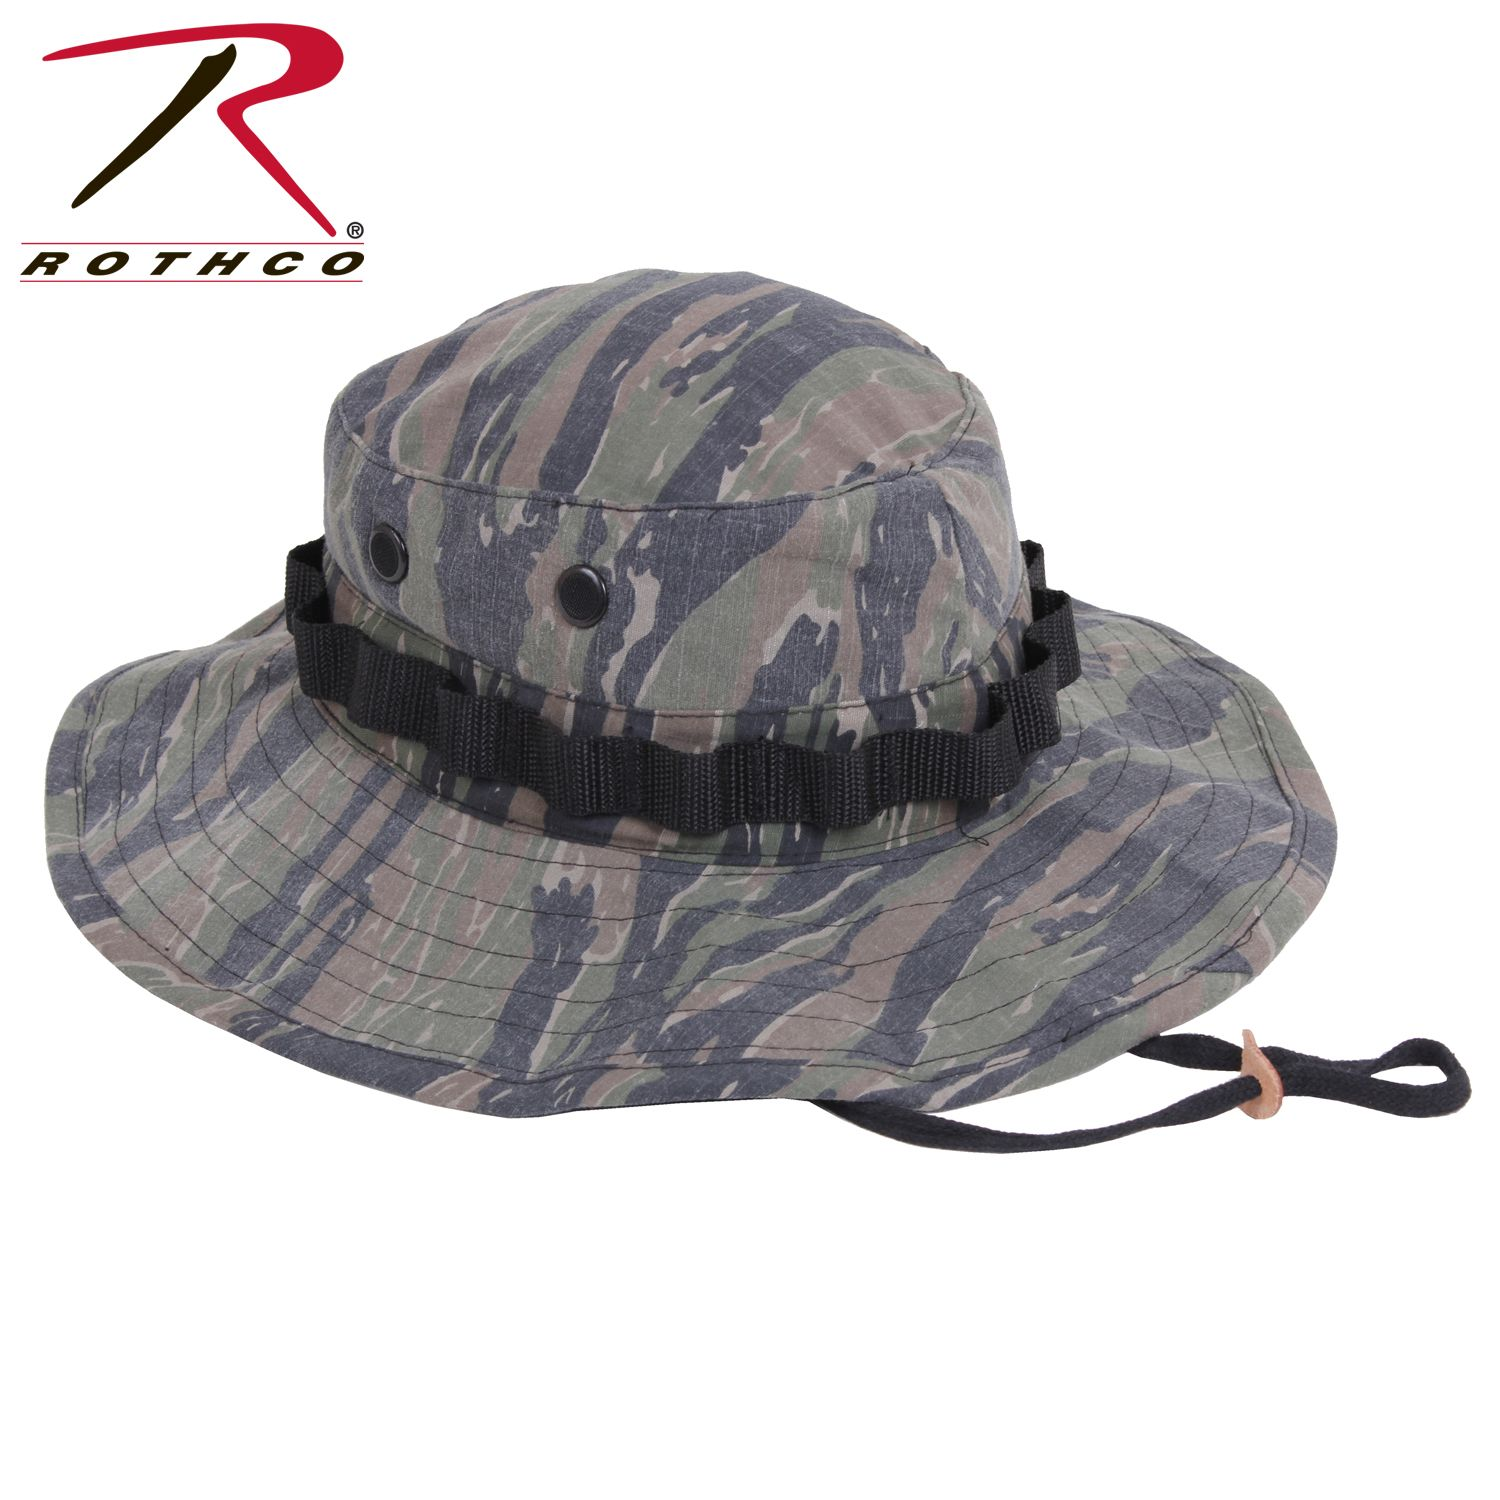 Buy Rothco Vintage Vietnam Style Boonie Hat - Rothco Online at Best ... f71d6f56add